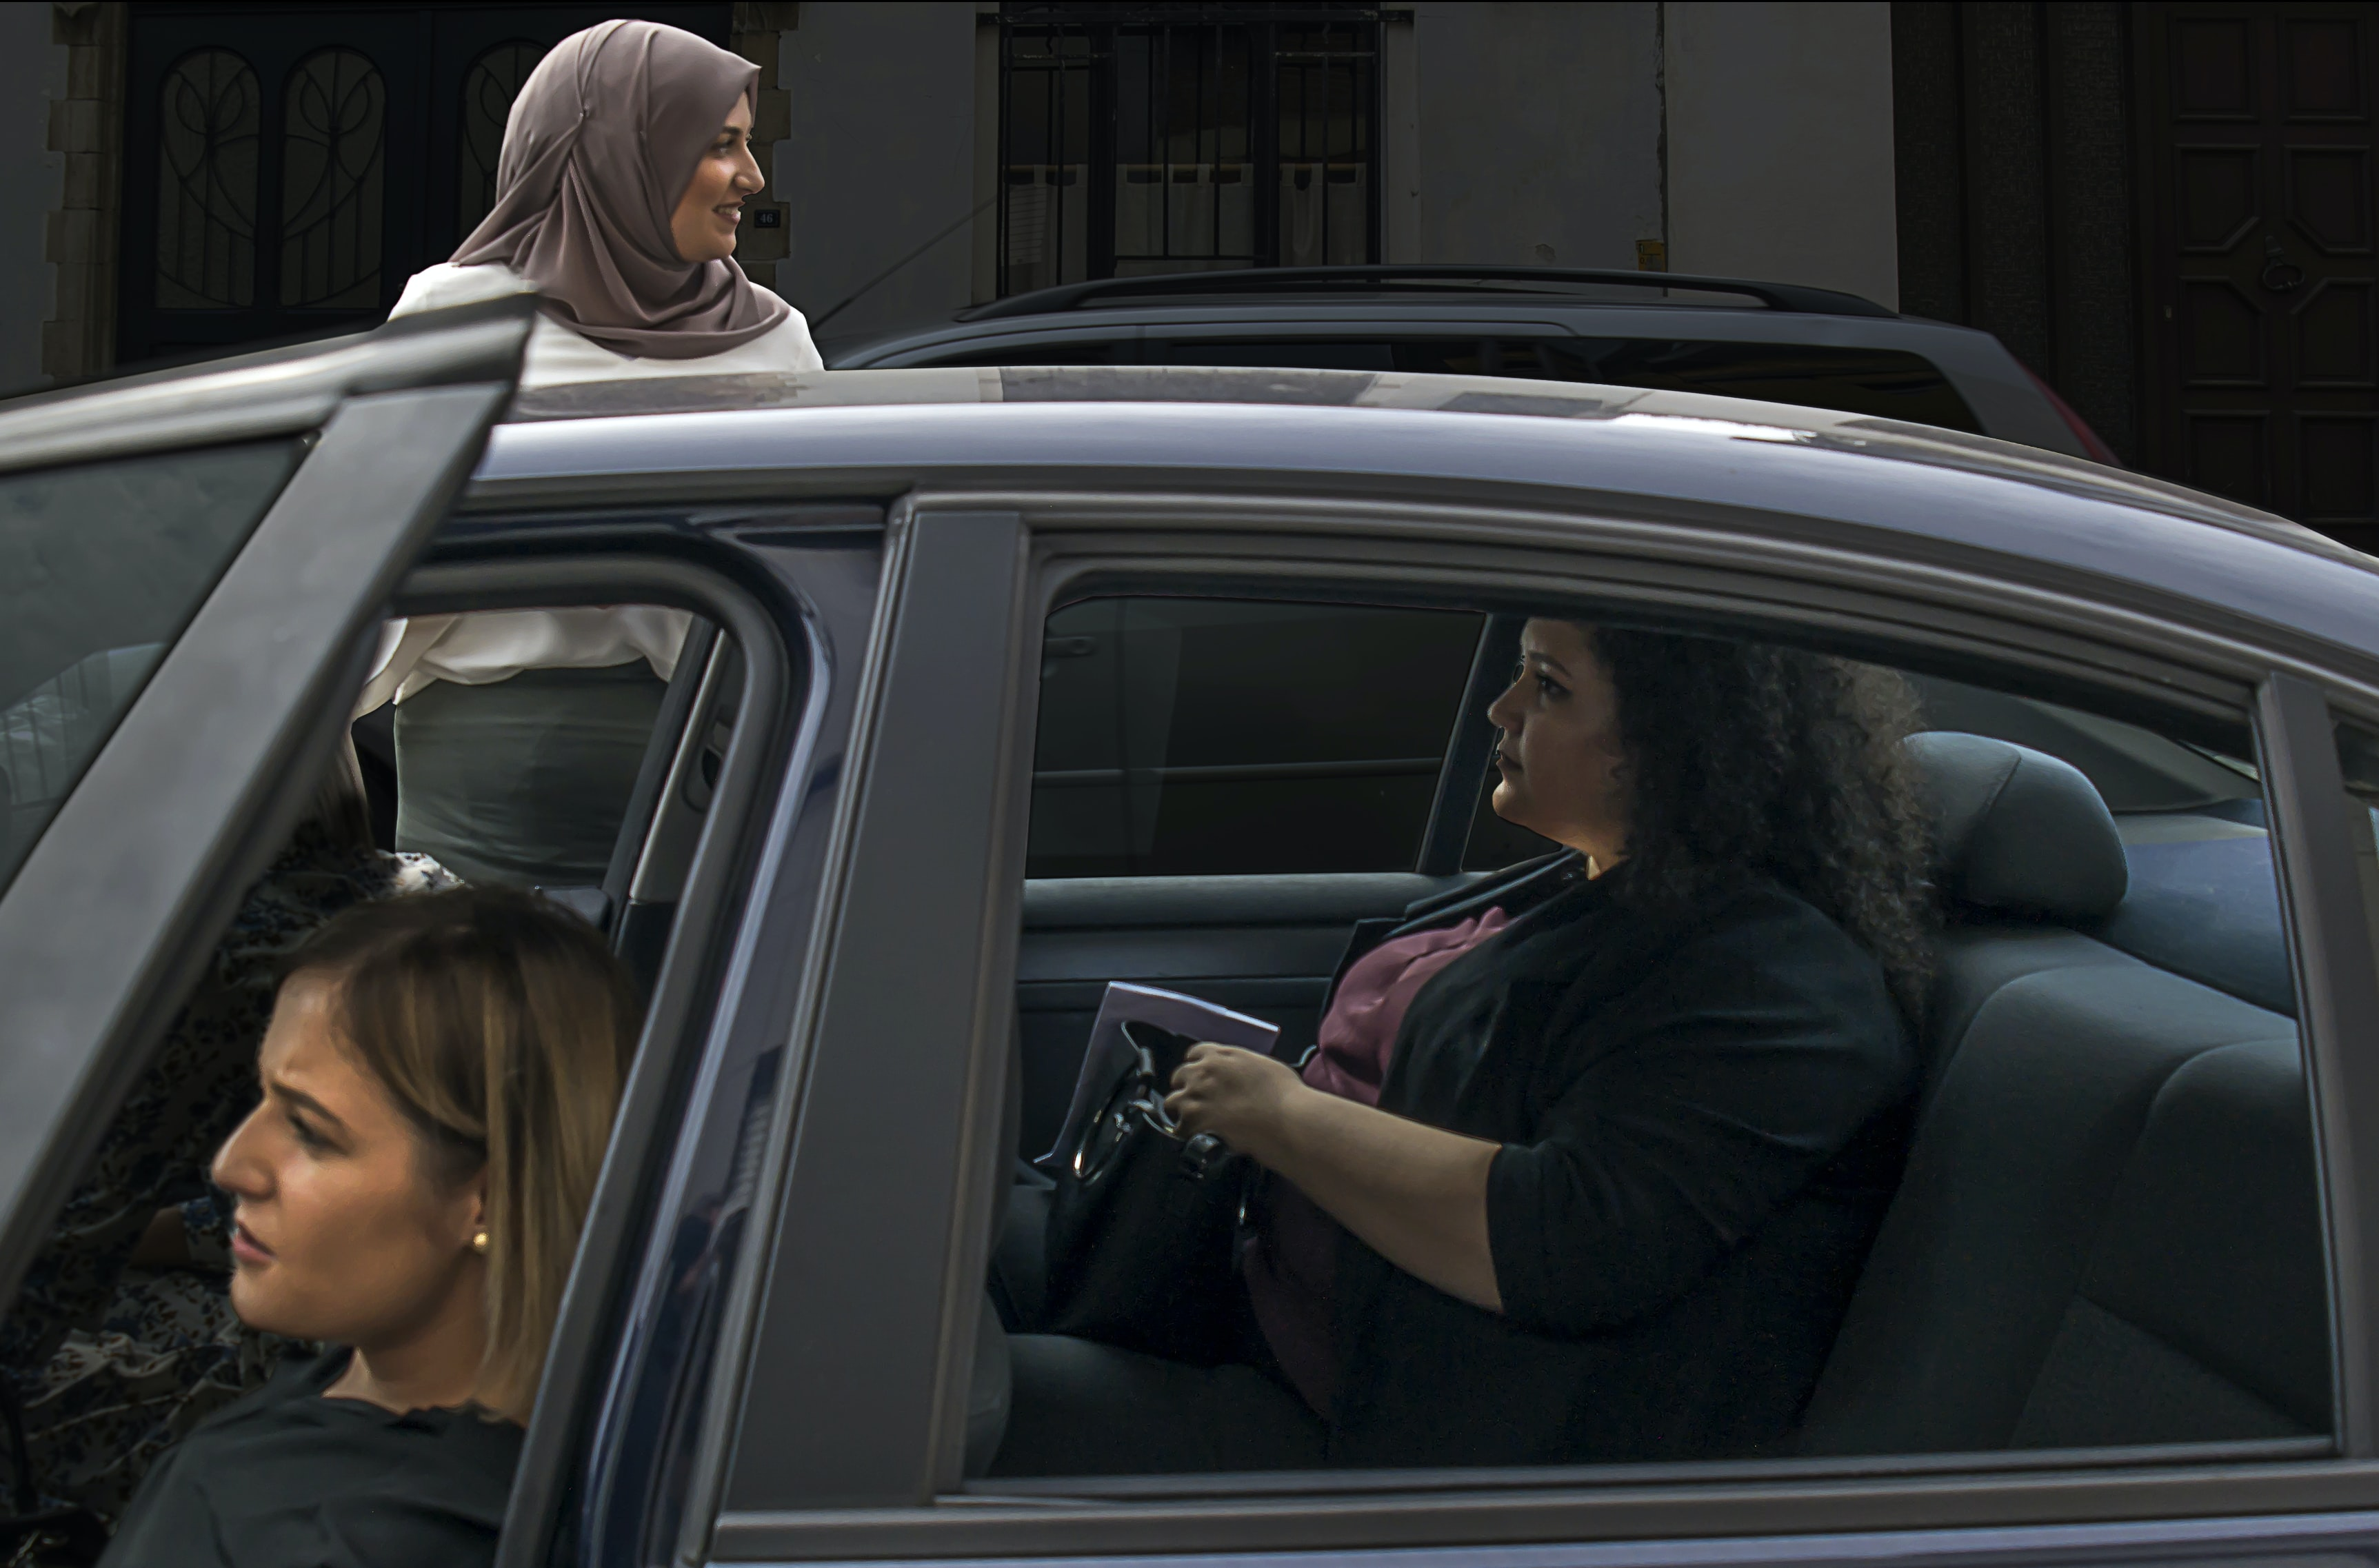 two woman inside vehicle beside woman on the outside wearing brown hijab headscarf during daytime